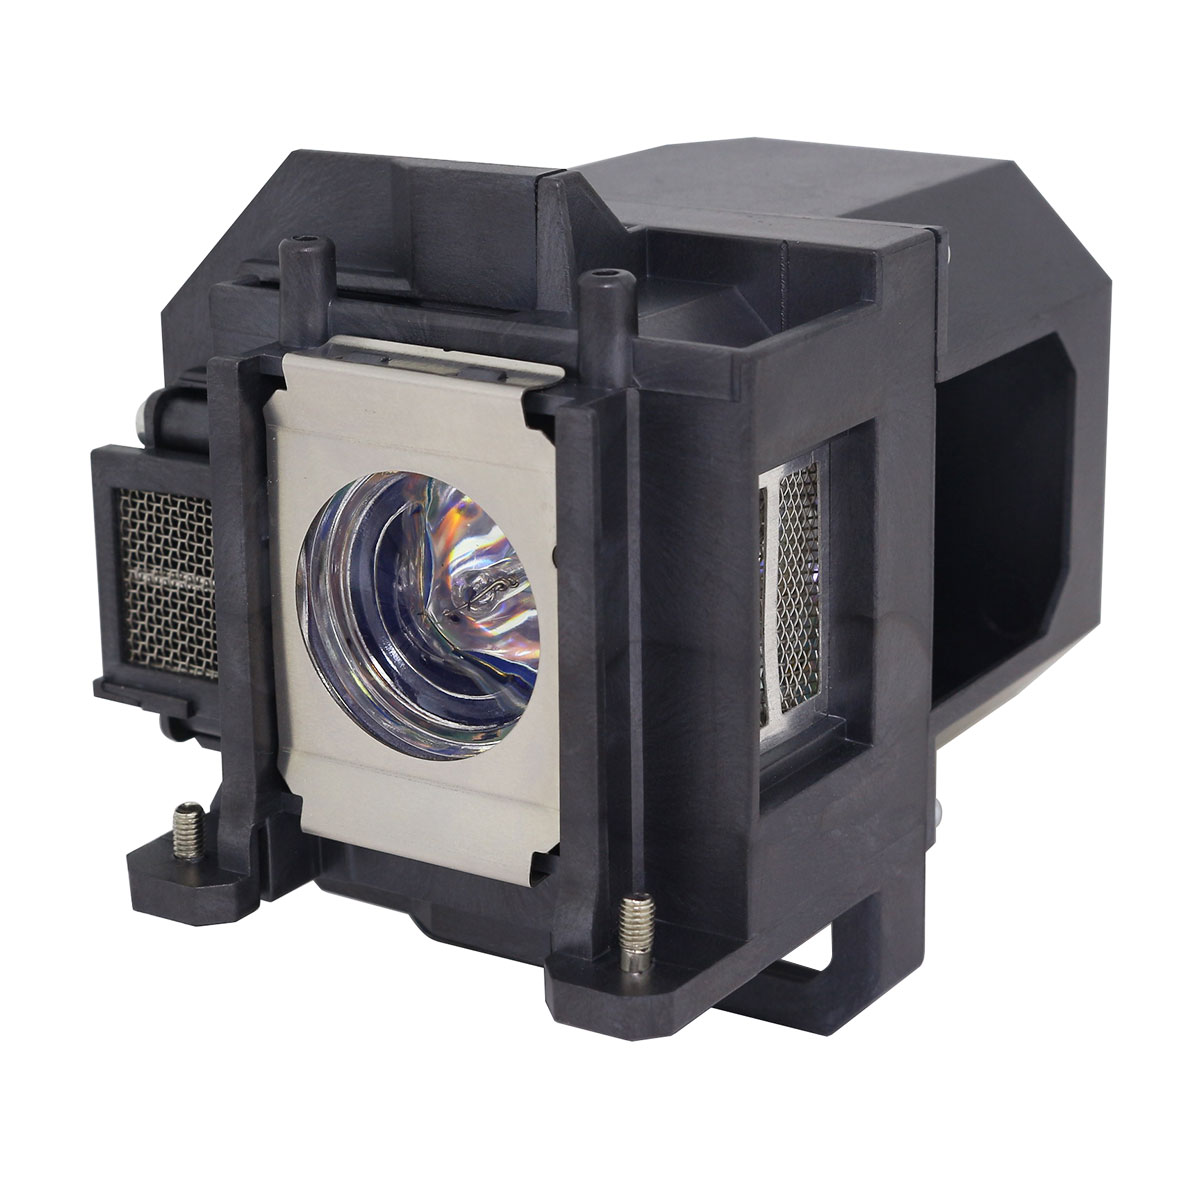 Epson Elplp53 Projector Lamp New Uhe Bulb At A Low Price